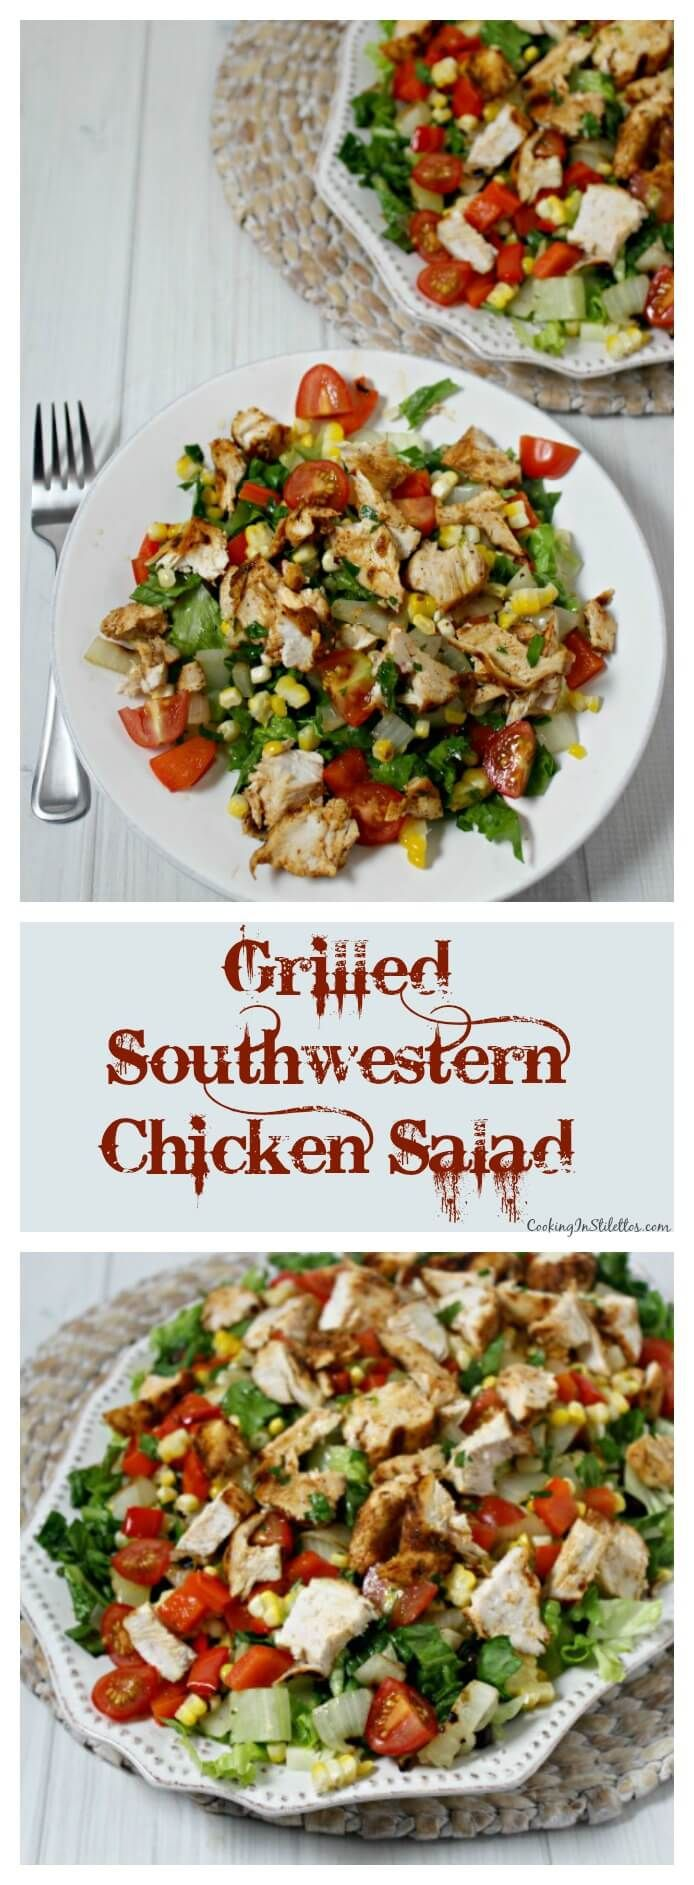 Grilled Southwestern Chicken Salad brings the flavor with spice rubbed chicken, grilled veggies, crisp romaine lettuce & drizzled with a honey lime vinaigrette. This will be your go-to summer salad | Cooking In Stilettos ~ http://cookinginstilettos.com